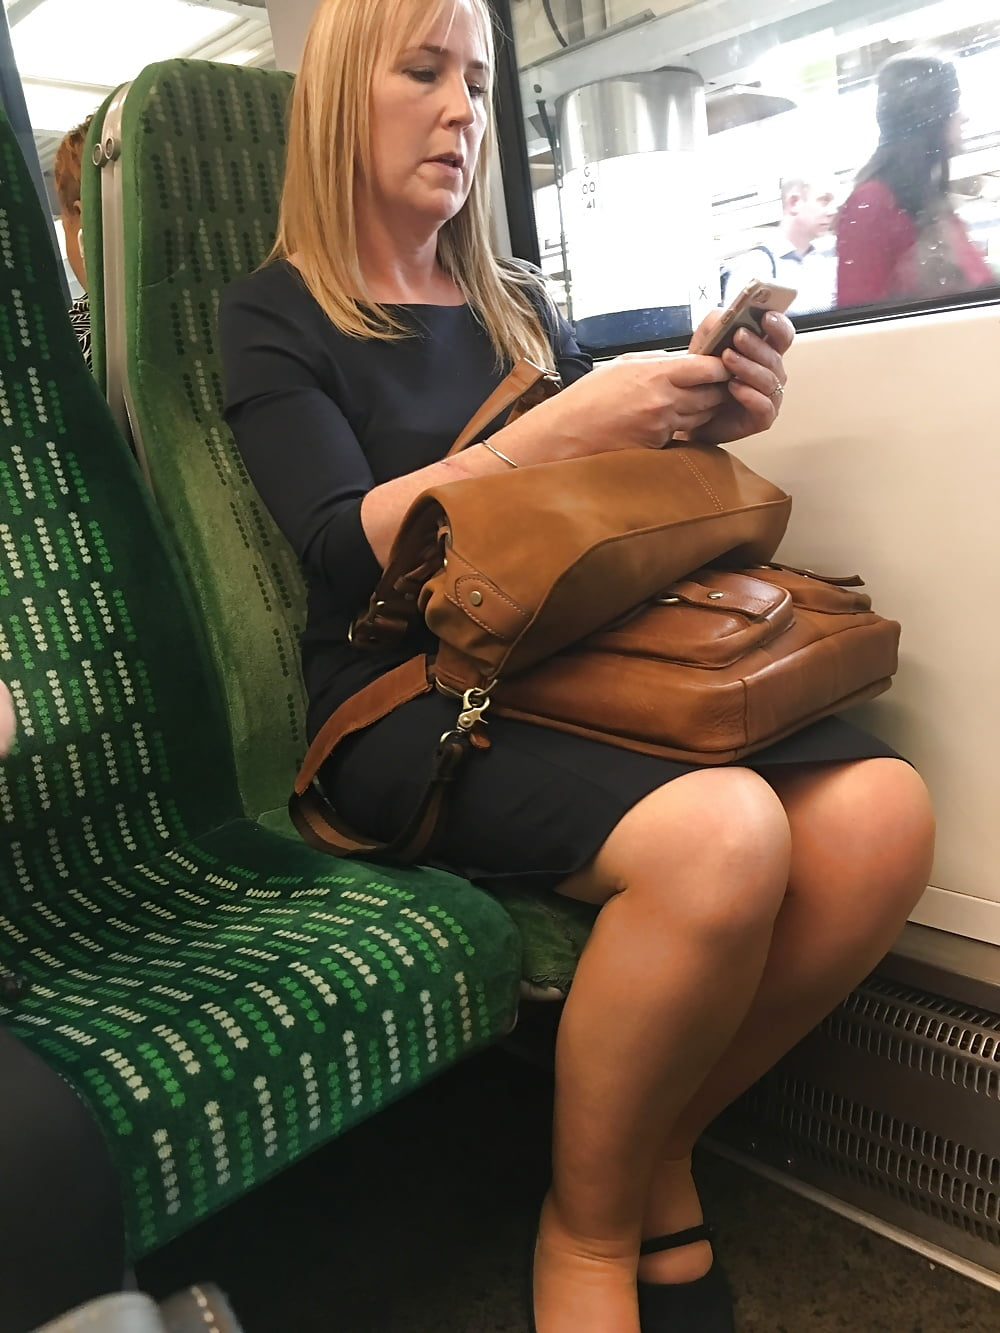 Pretty woman stripped naked on the train